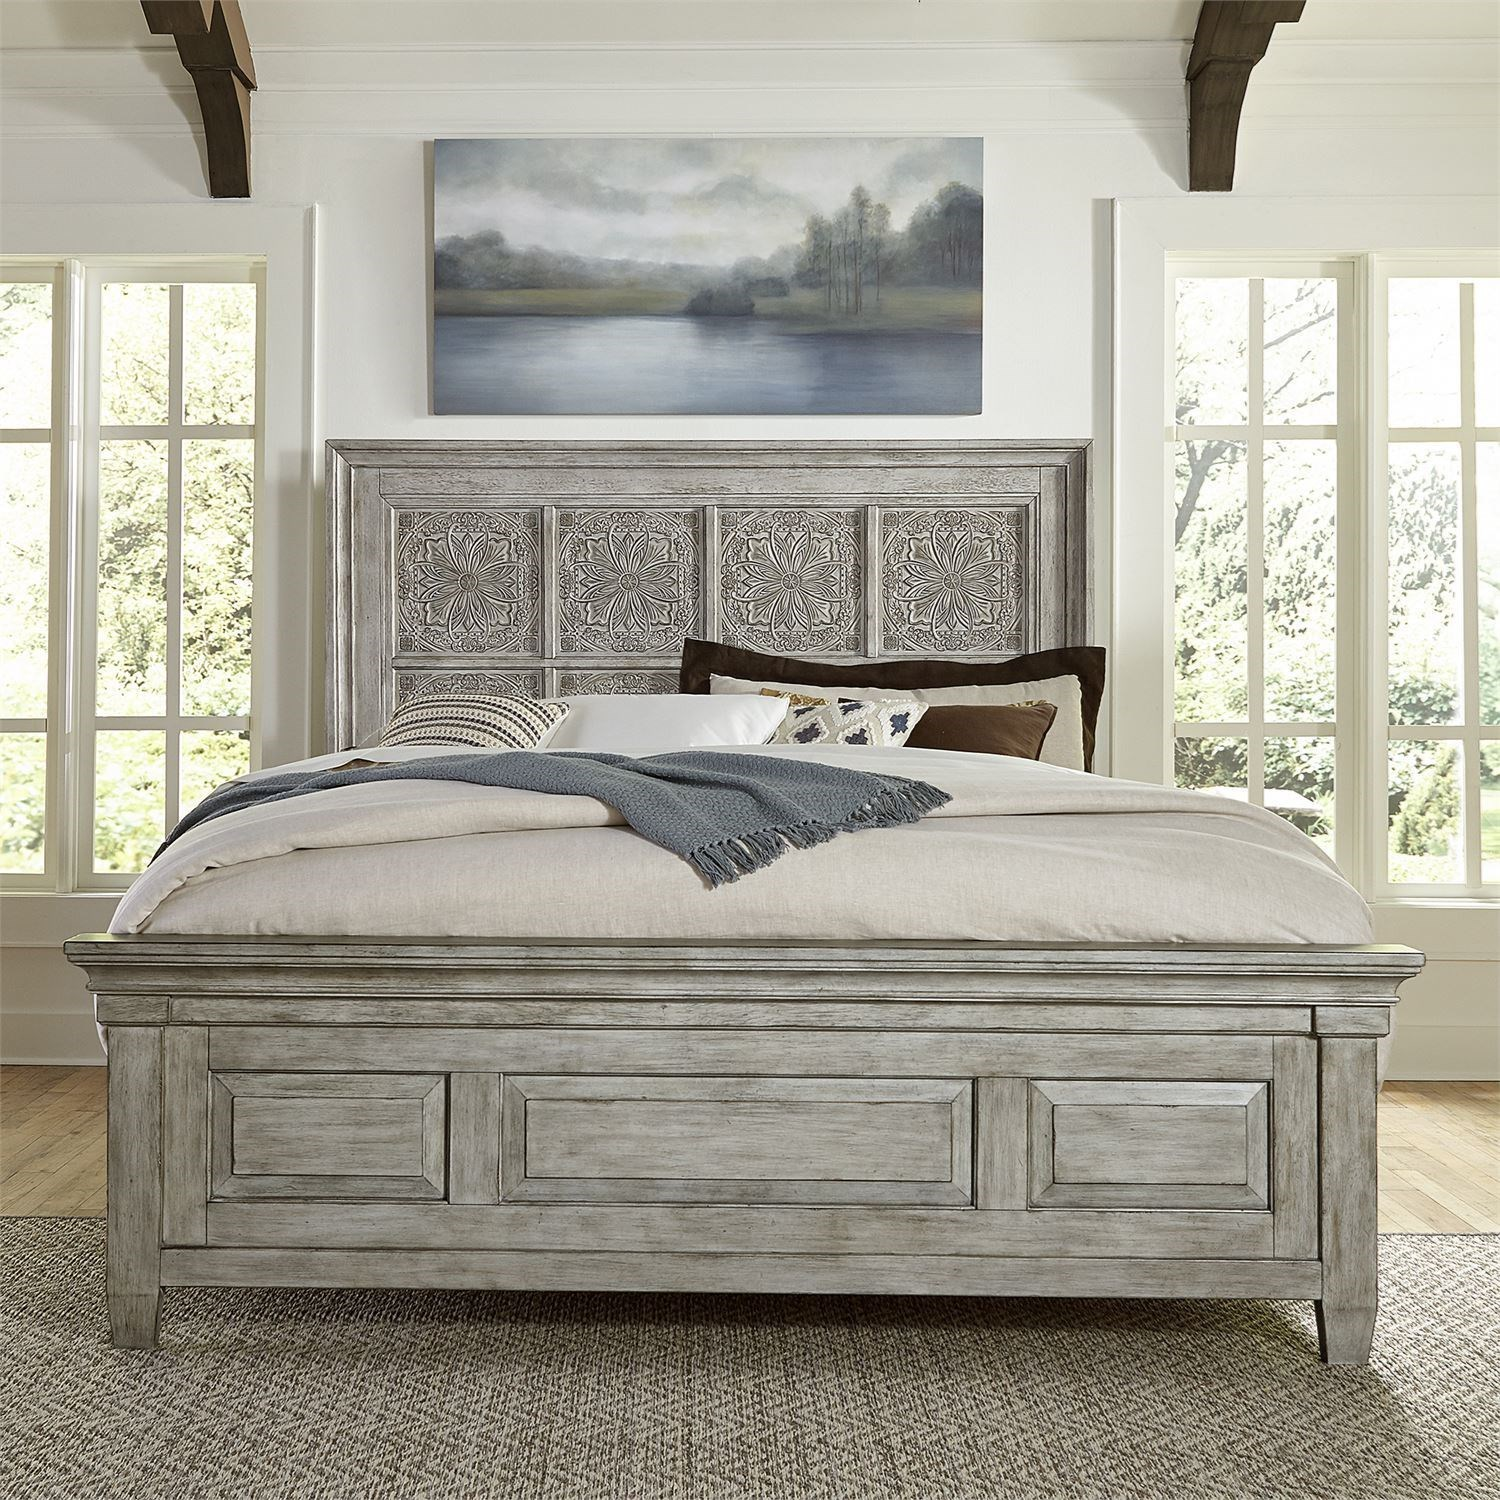 Transitional King Panel Bed with Decorative Headboard